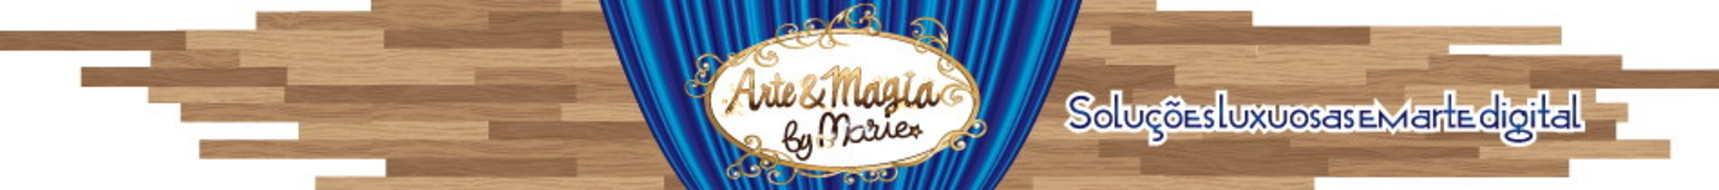 &#9830._.&#9830 Arte & Magia by Marie &#9830`..`._.`.,,.O.o&#9830